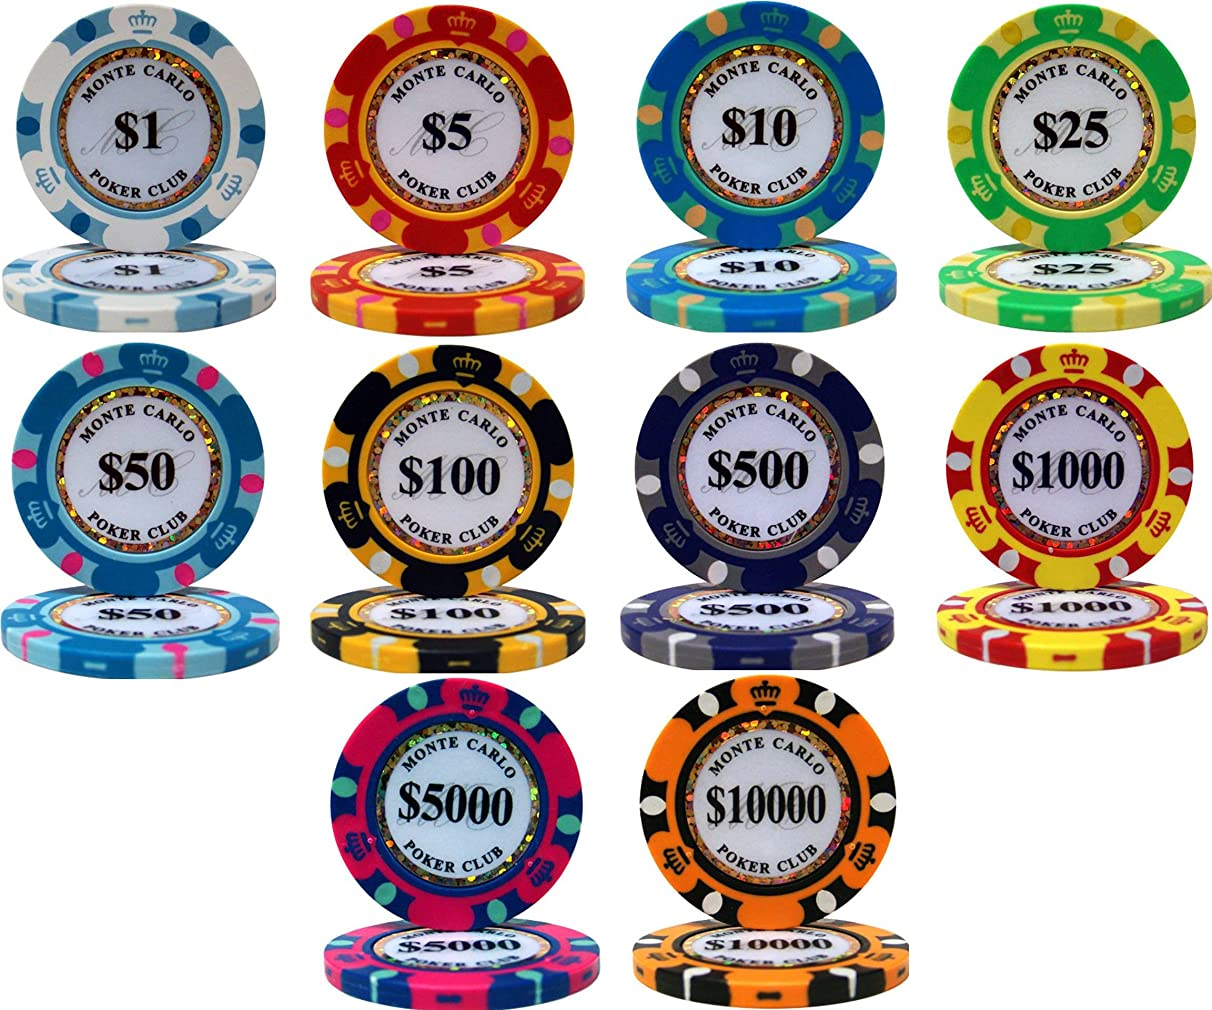 Monte Carlo 14gm Clay Poker Chip Sample Set - 10 New Chips